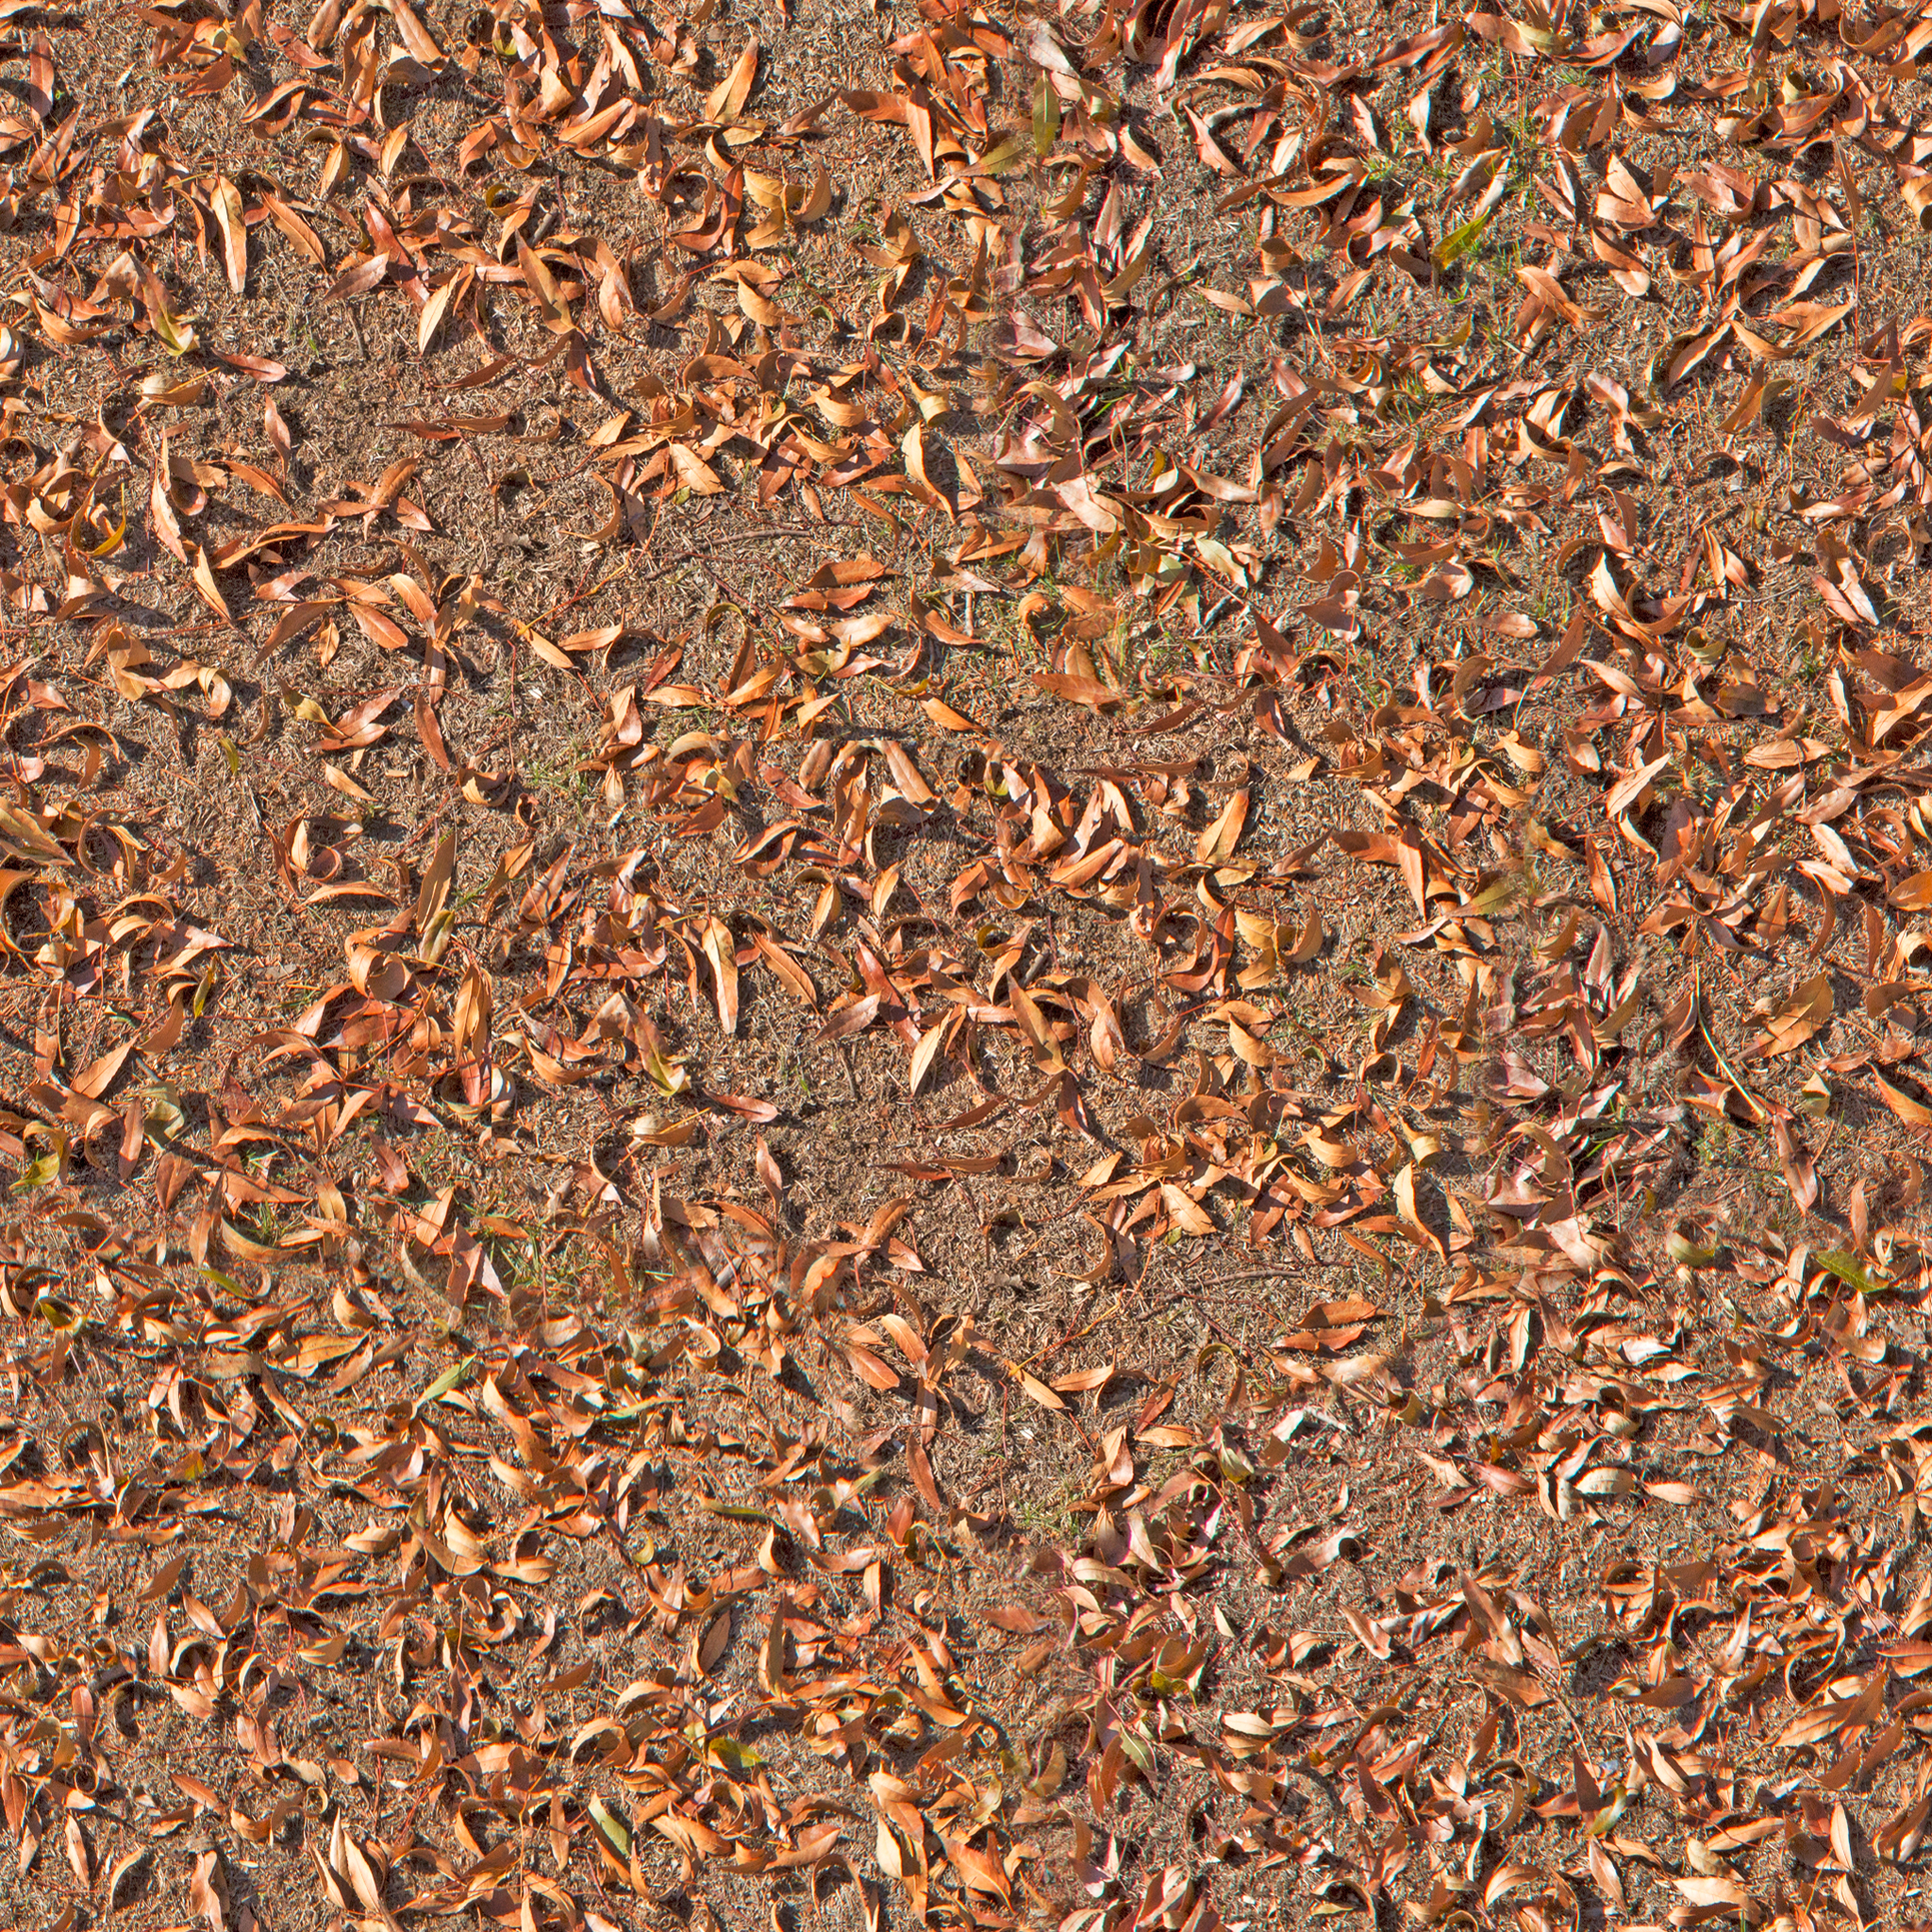 autumn-leaf-litter.jpg